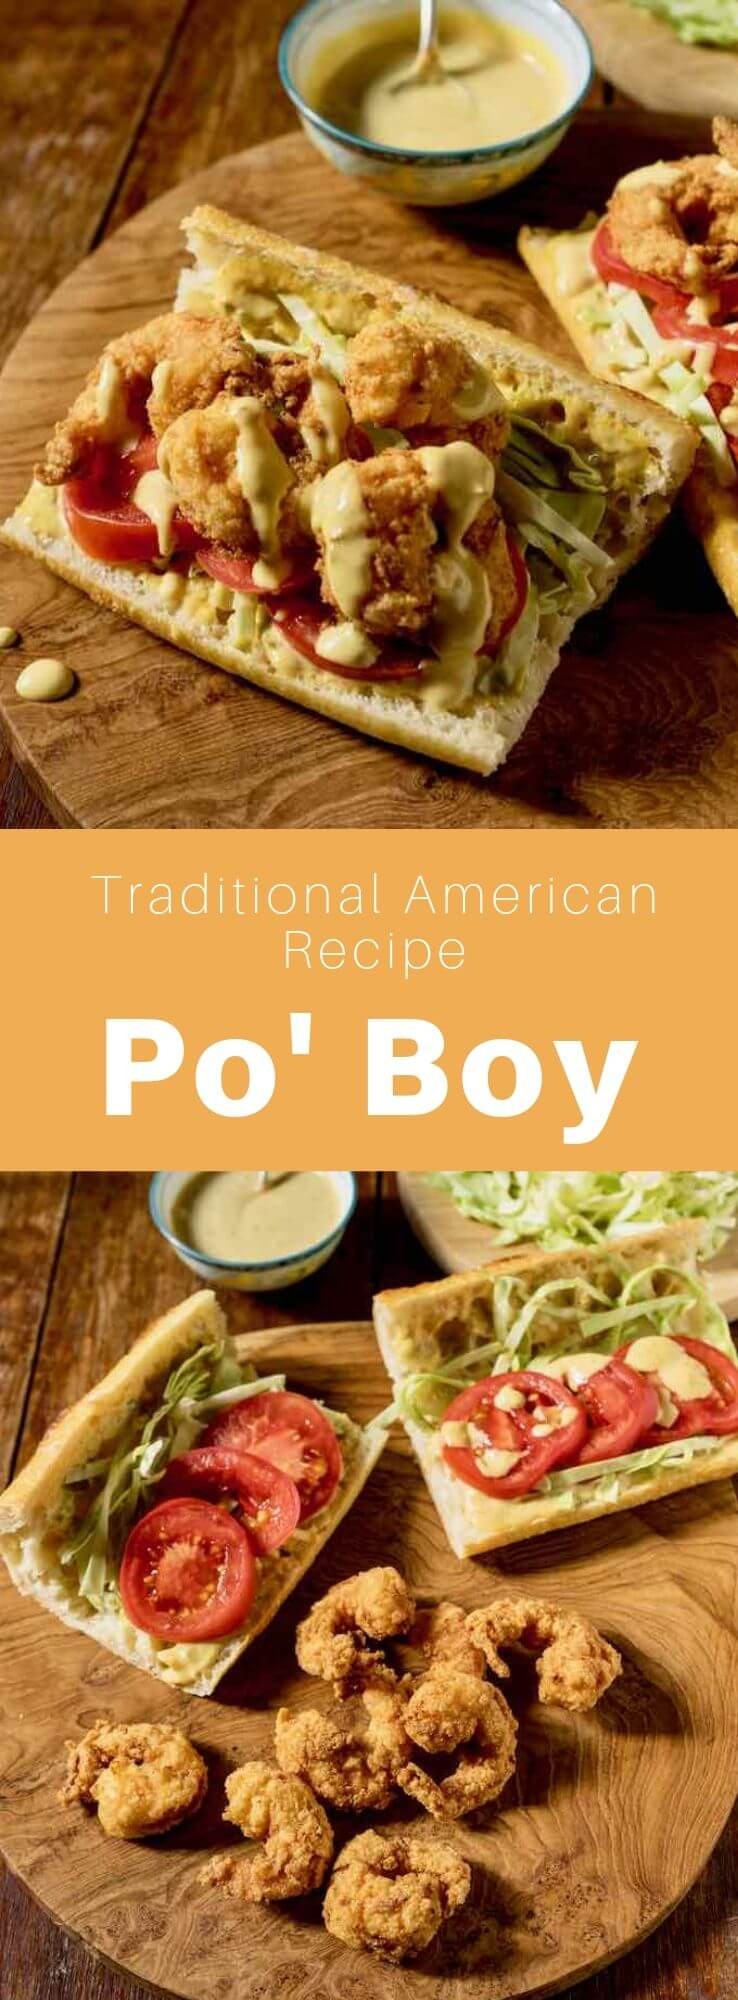 The po 'boy is a typical Louisiana fried seafood (or roast beef) sandwich. It is served in a baguette bread from New Orleans derived from the French baguette. #SouthernFood #SouthernRecipe #SouthernCuisine #AmericanRecipe #AmericanFood #AmericanCuisine #WorldCuisine #196flavors